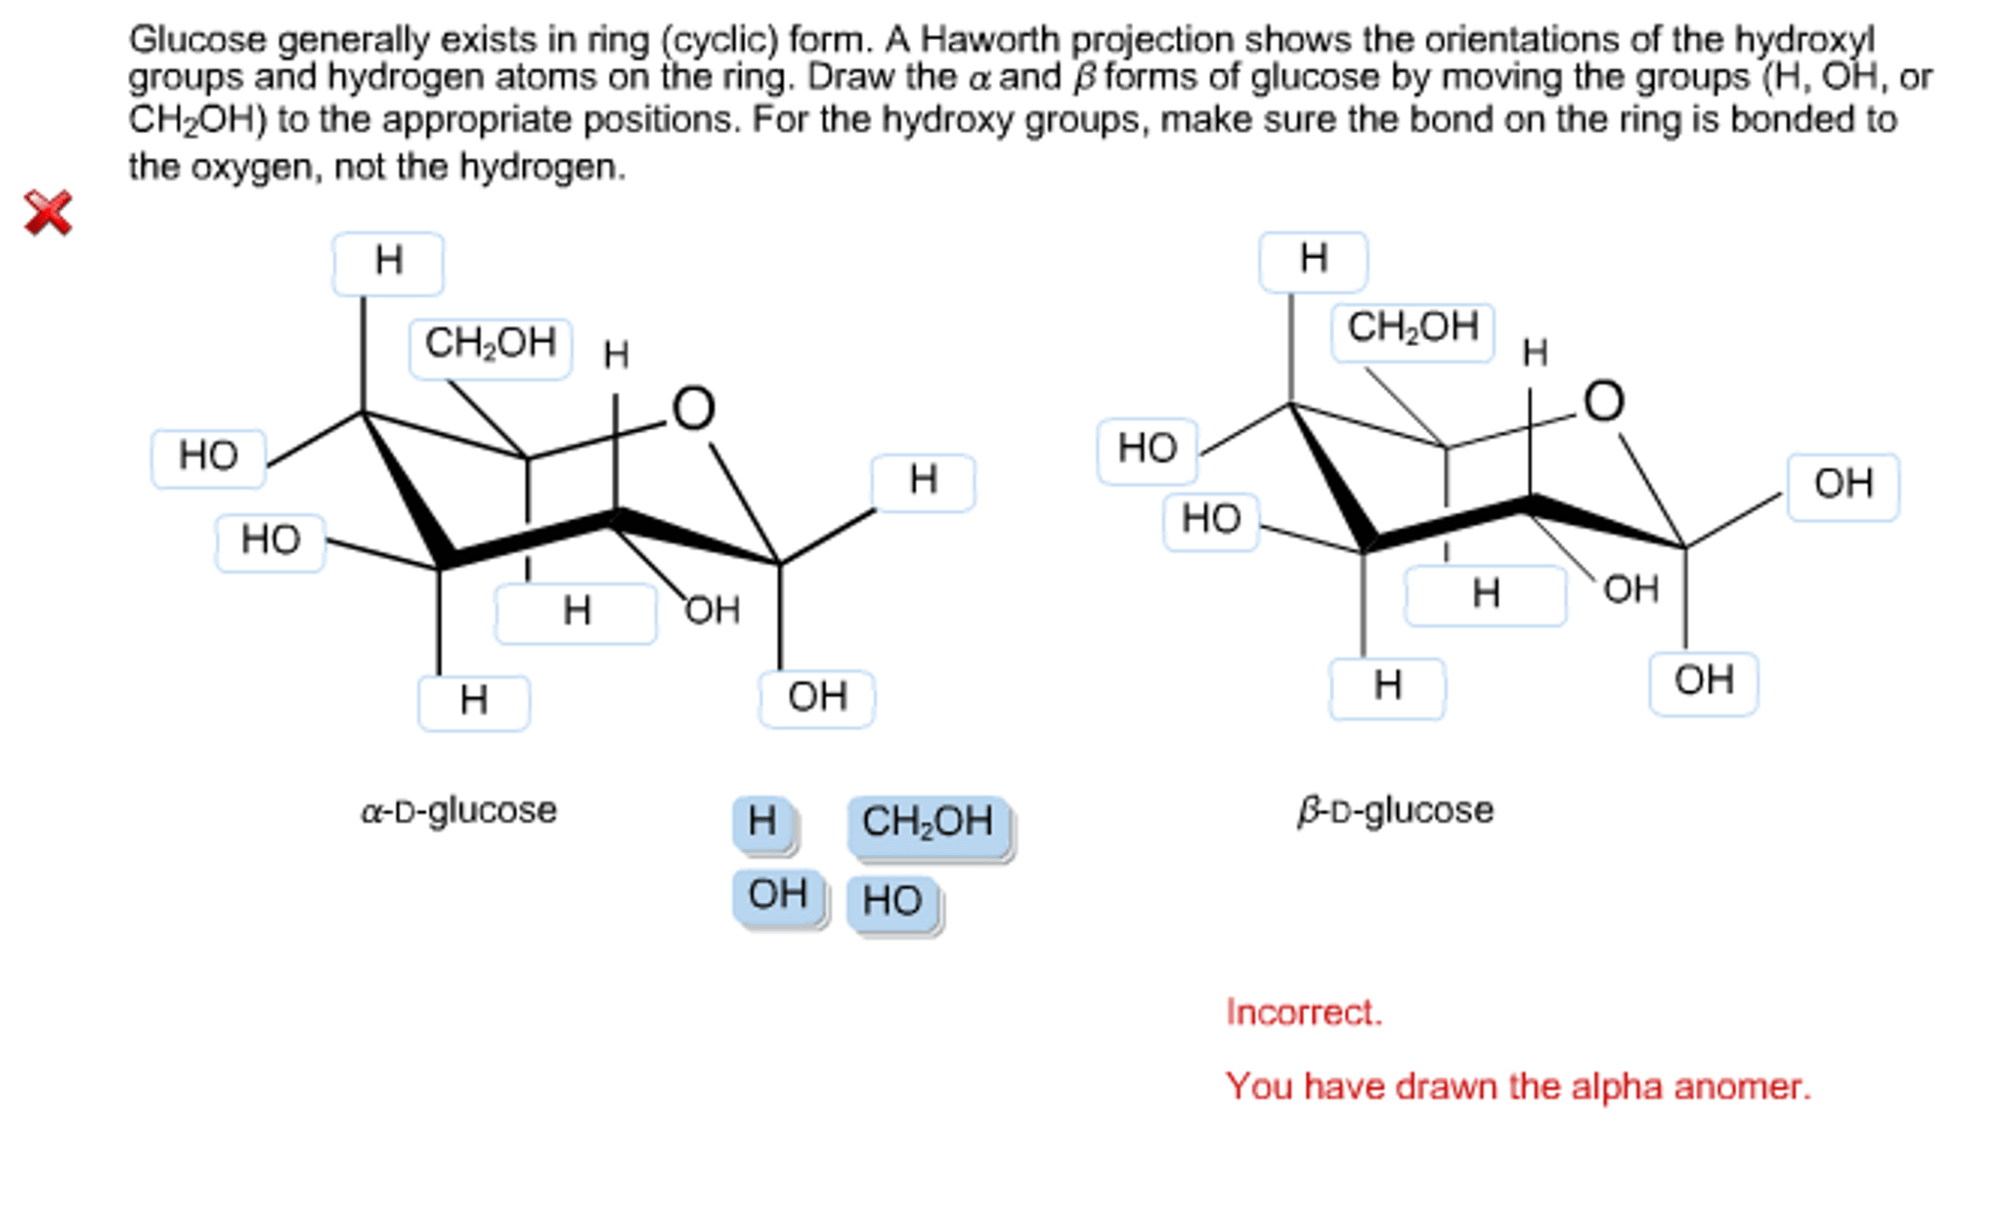 hight resolution of glucose generally exists in ring cyclic form a